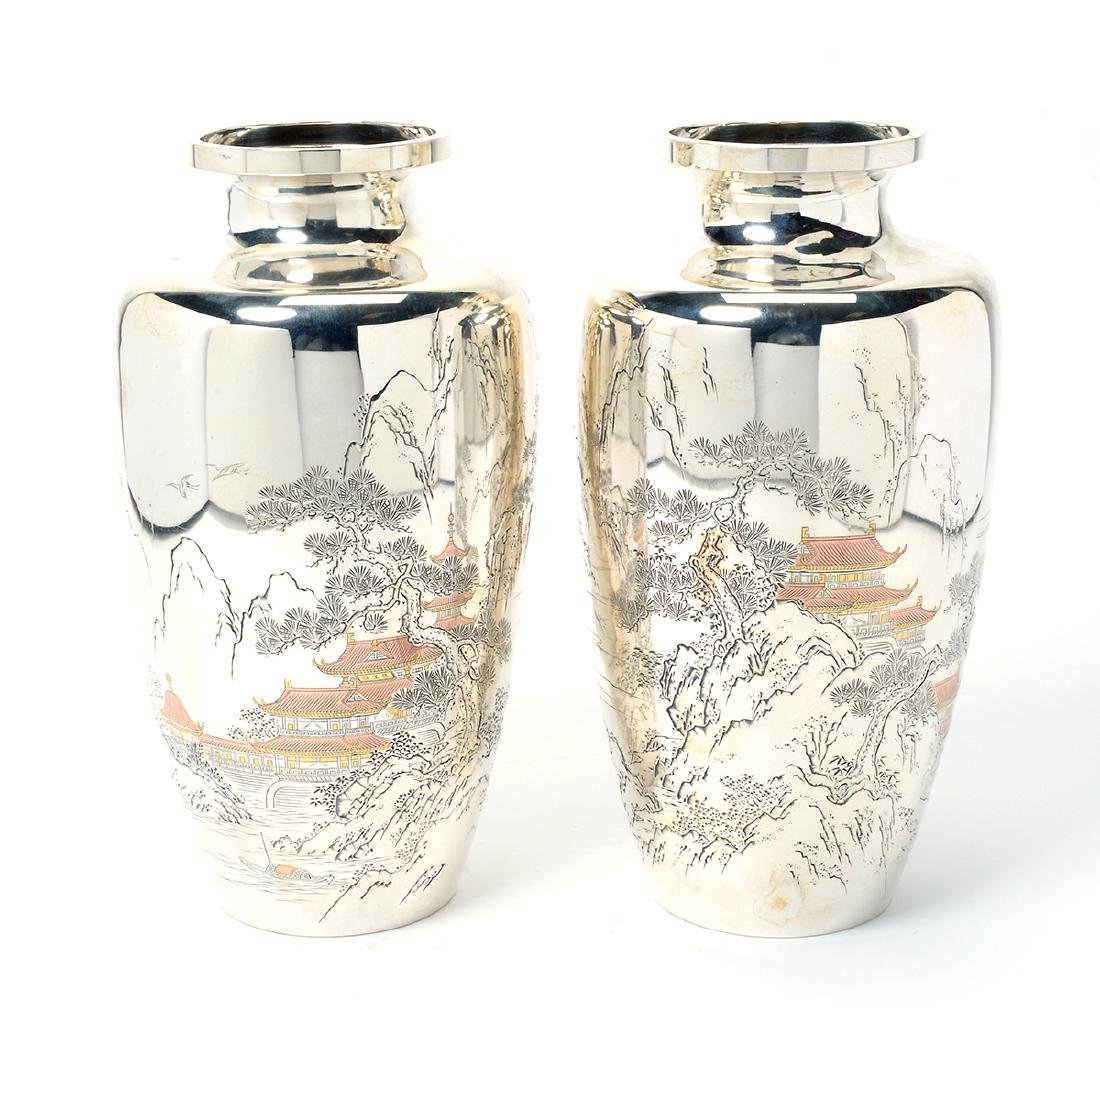 Pair of Japanese Silver Vases, Meiji Period